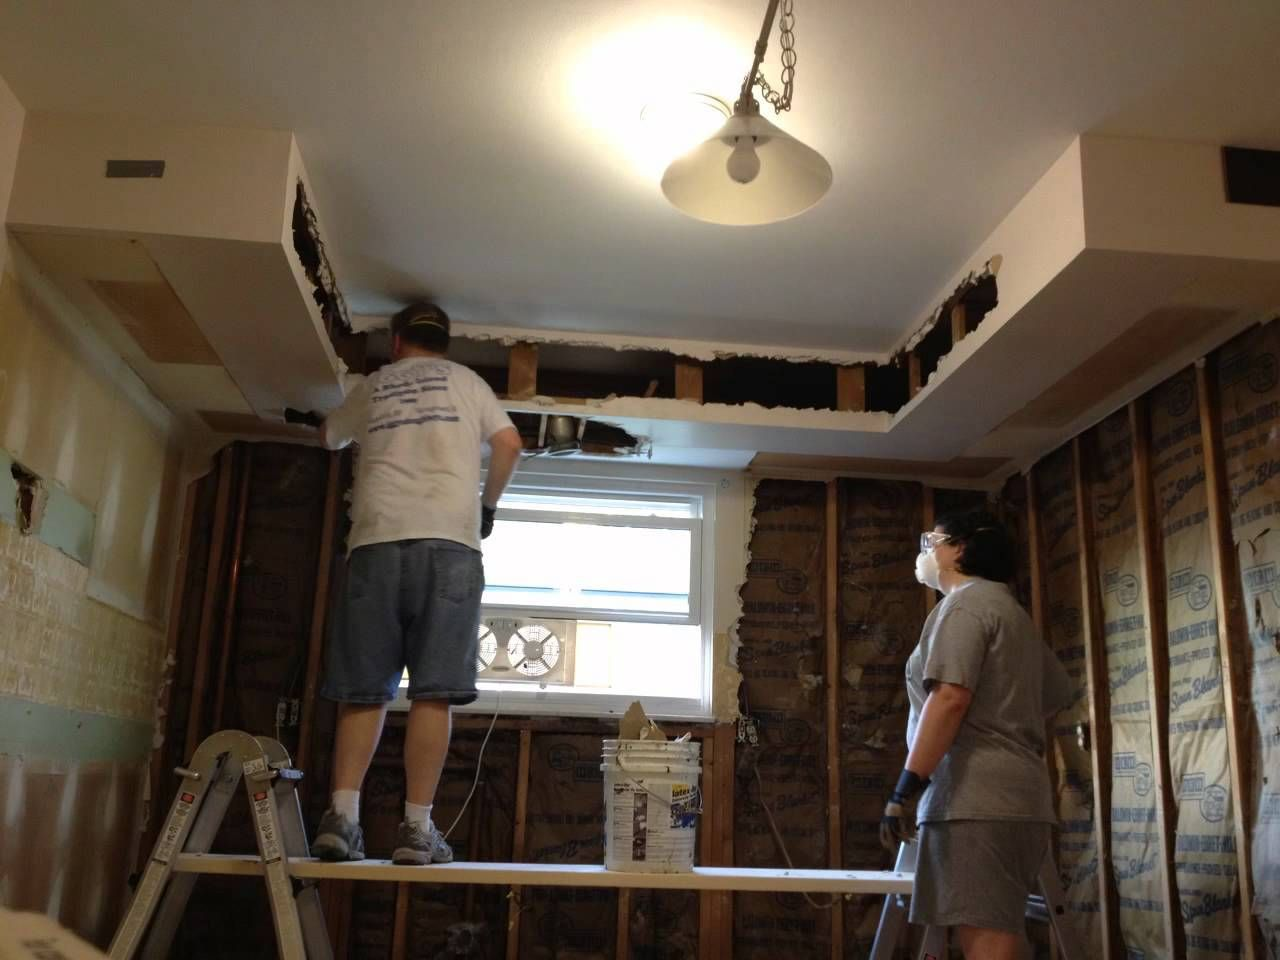 Kitchen Soffit Removal Drywall Inside Custom Cabinets In Sheetrock 5 Ways To Save Space In Your Home With Dryw Kitchen Soffit Kitchen Remodel Plasterboard Wall